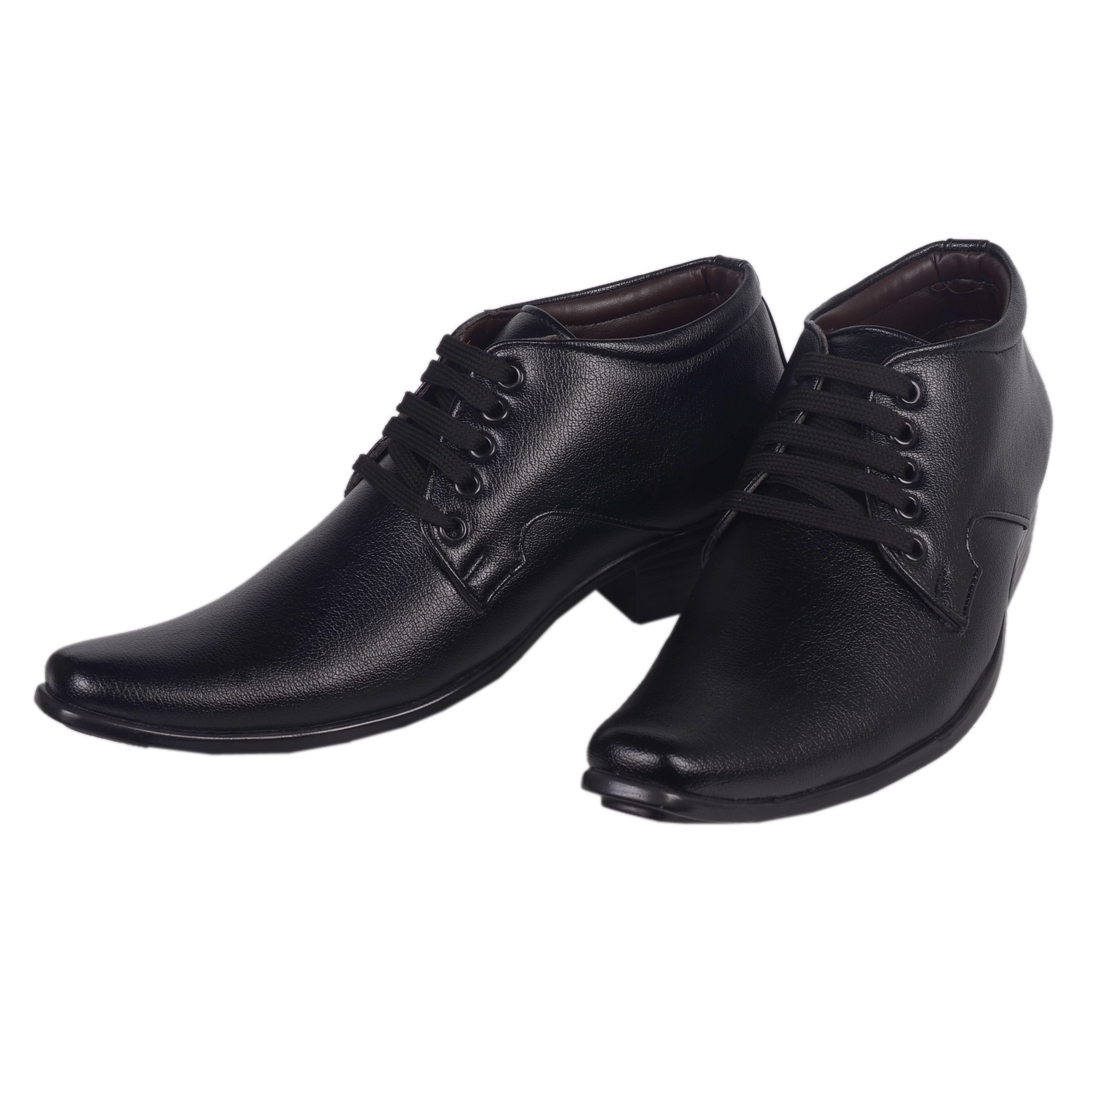 cool river 2097 lace up shoes buy formal shoes for at